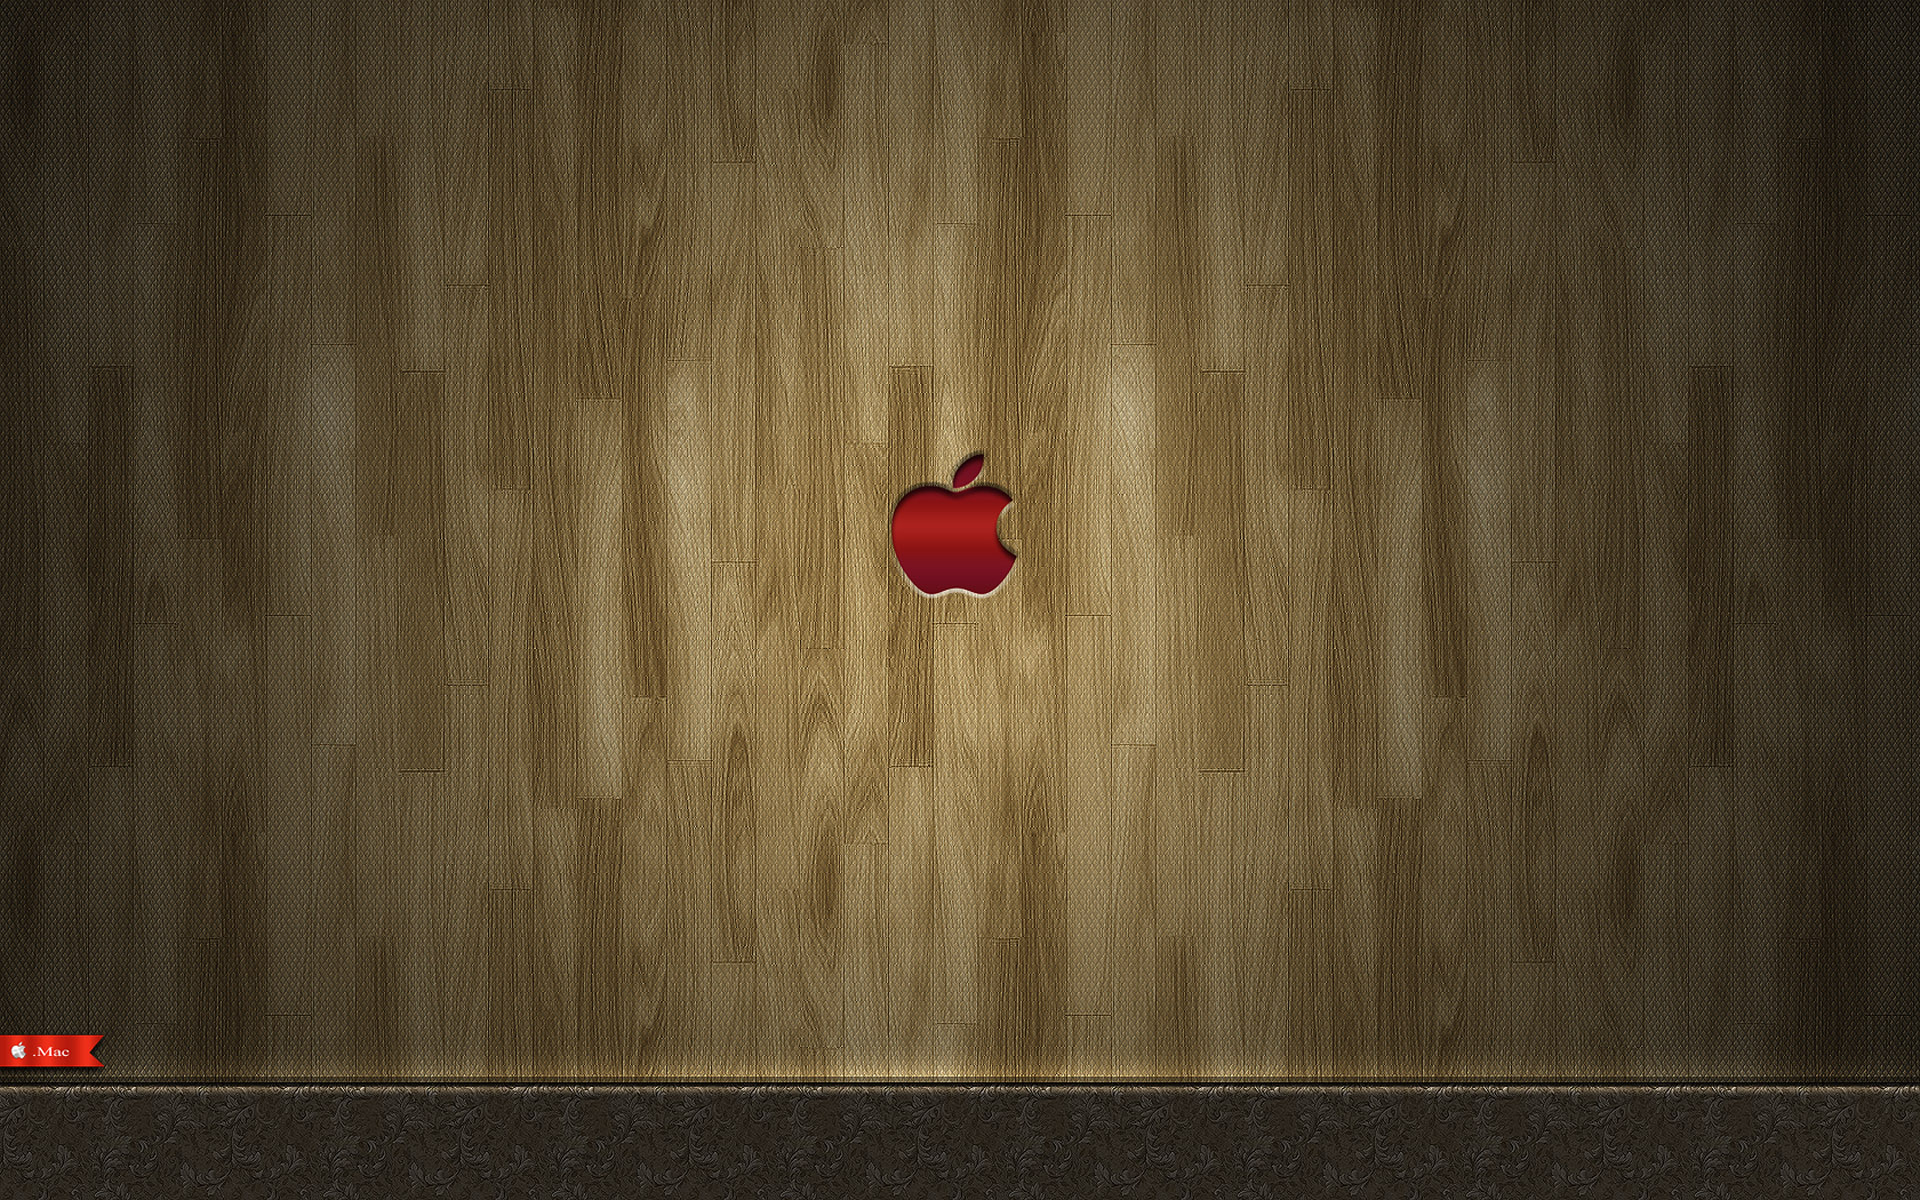 HD Apple wallpaper 20562